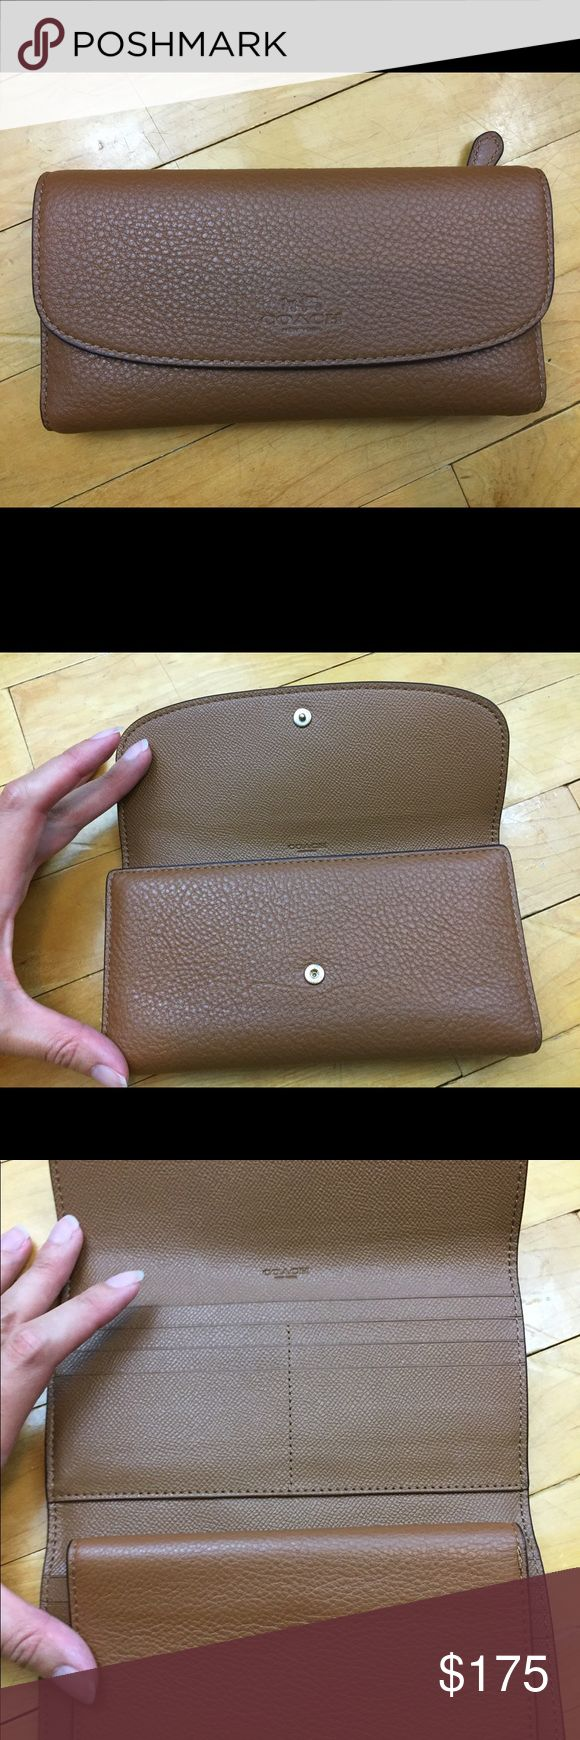 NWT Coach Trifold Wallet NWT Coach Trifold Wallet. This Wallet was made for the factory outlet store. It's made of pebble brown leather. It features 12 cc slots, 2 large pockets and a checkbook cover. It also has a back zipper pocket. Coach Bags Wallets